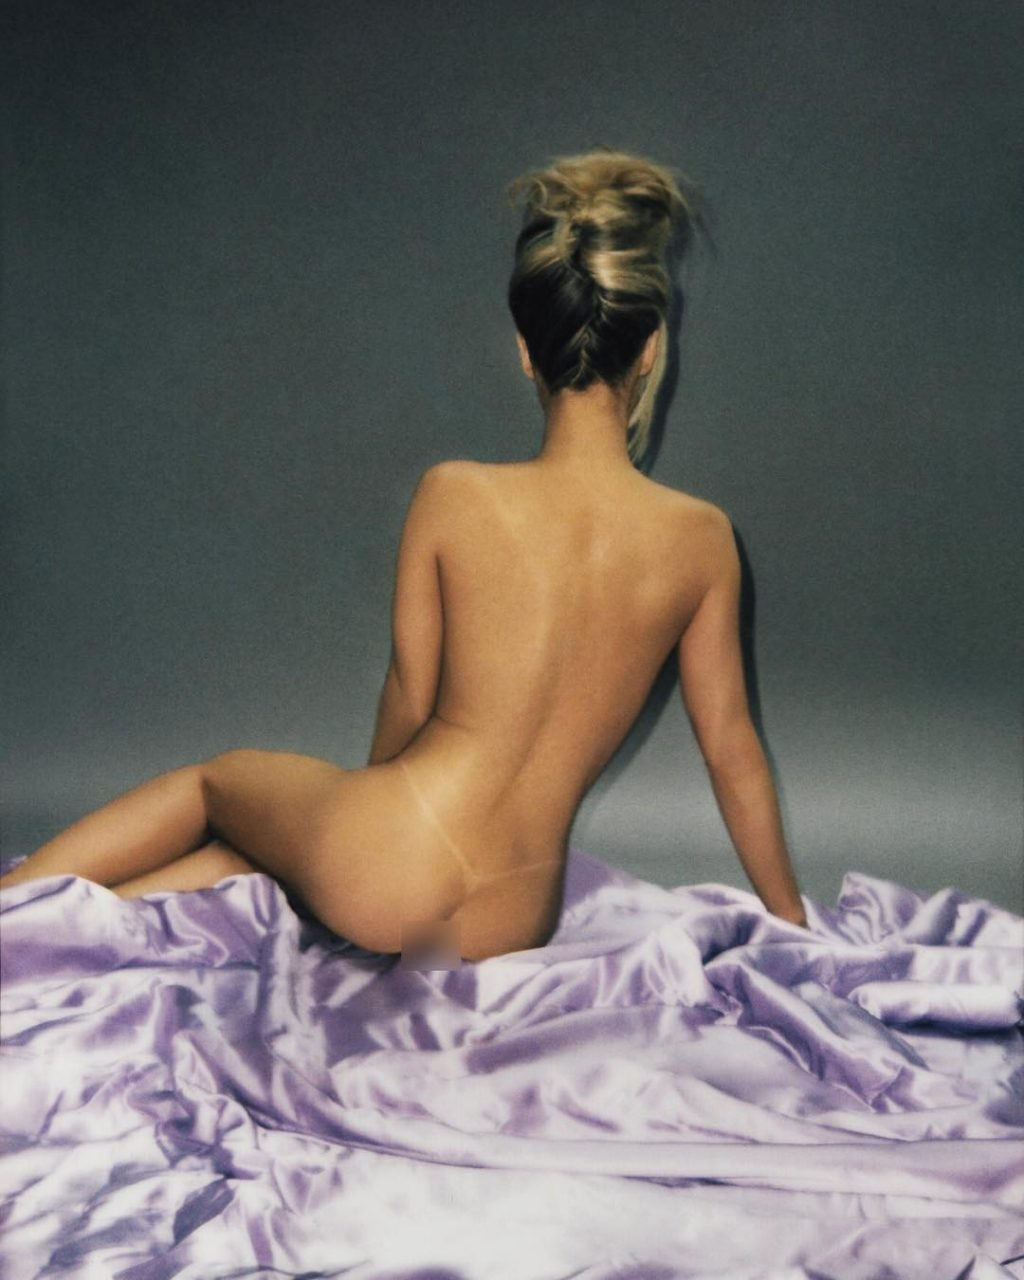 Opinion Nude carmen electra photos with